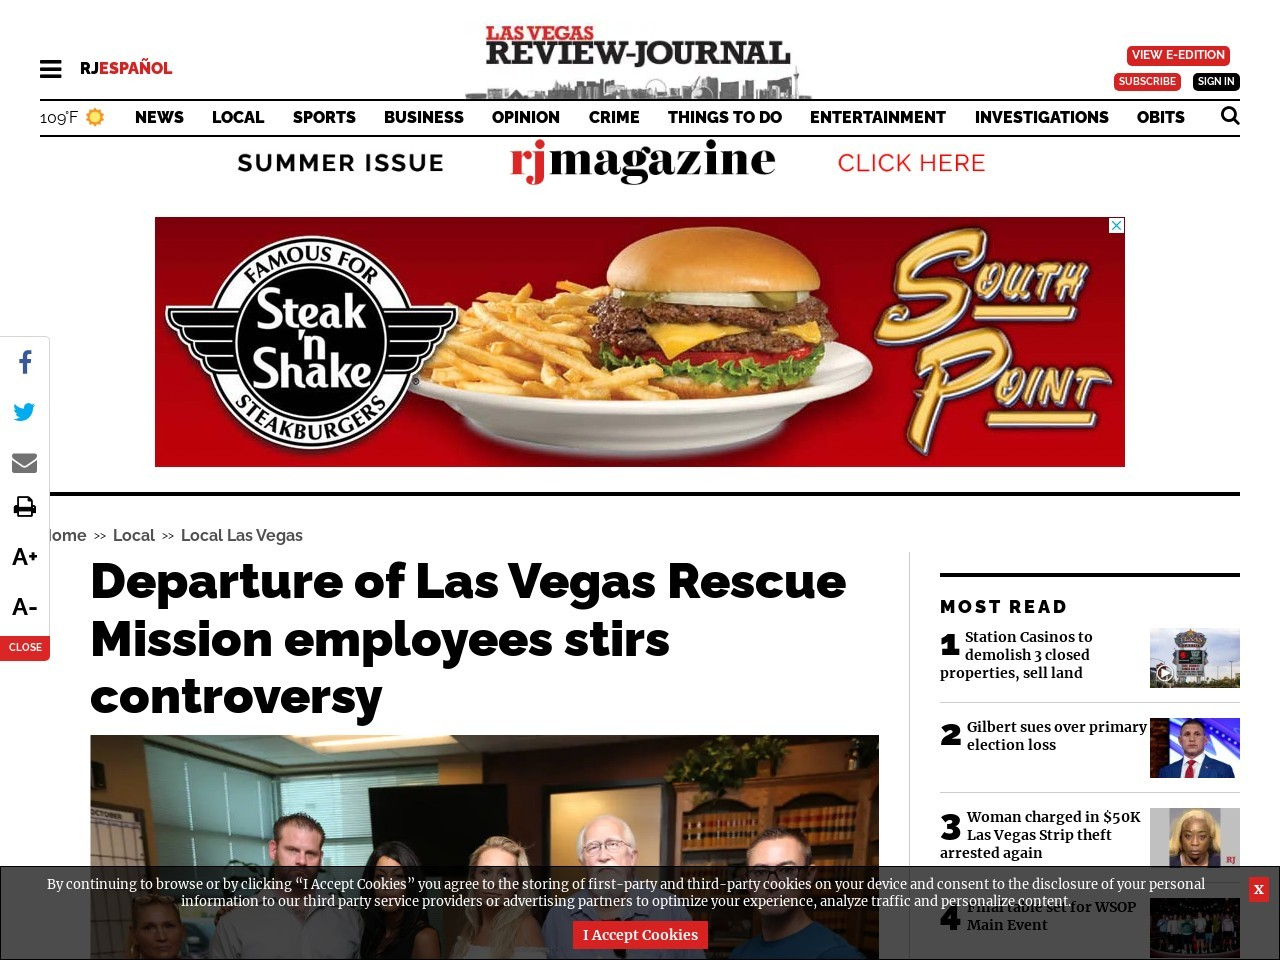 Departure of Las Vegas Rescue Mission employees stirs controversy